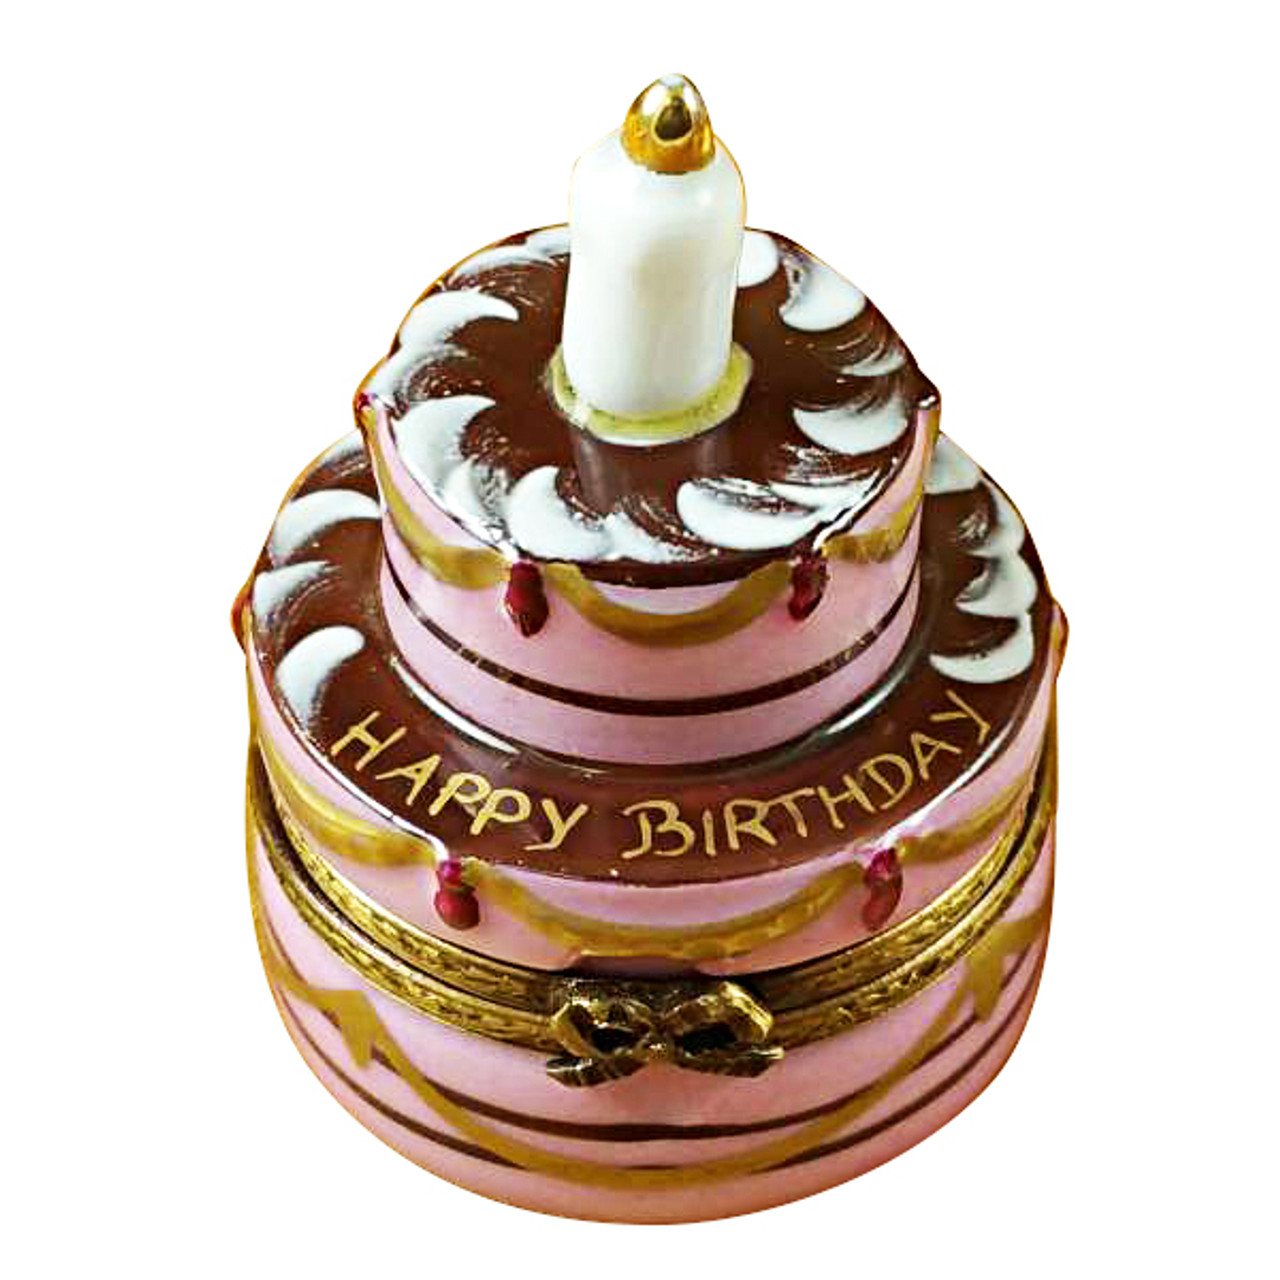 Limoges Imports Birthday Cake W/Candle Limoges Box